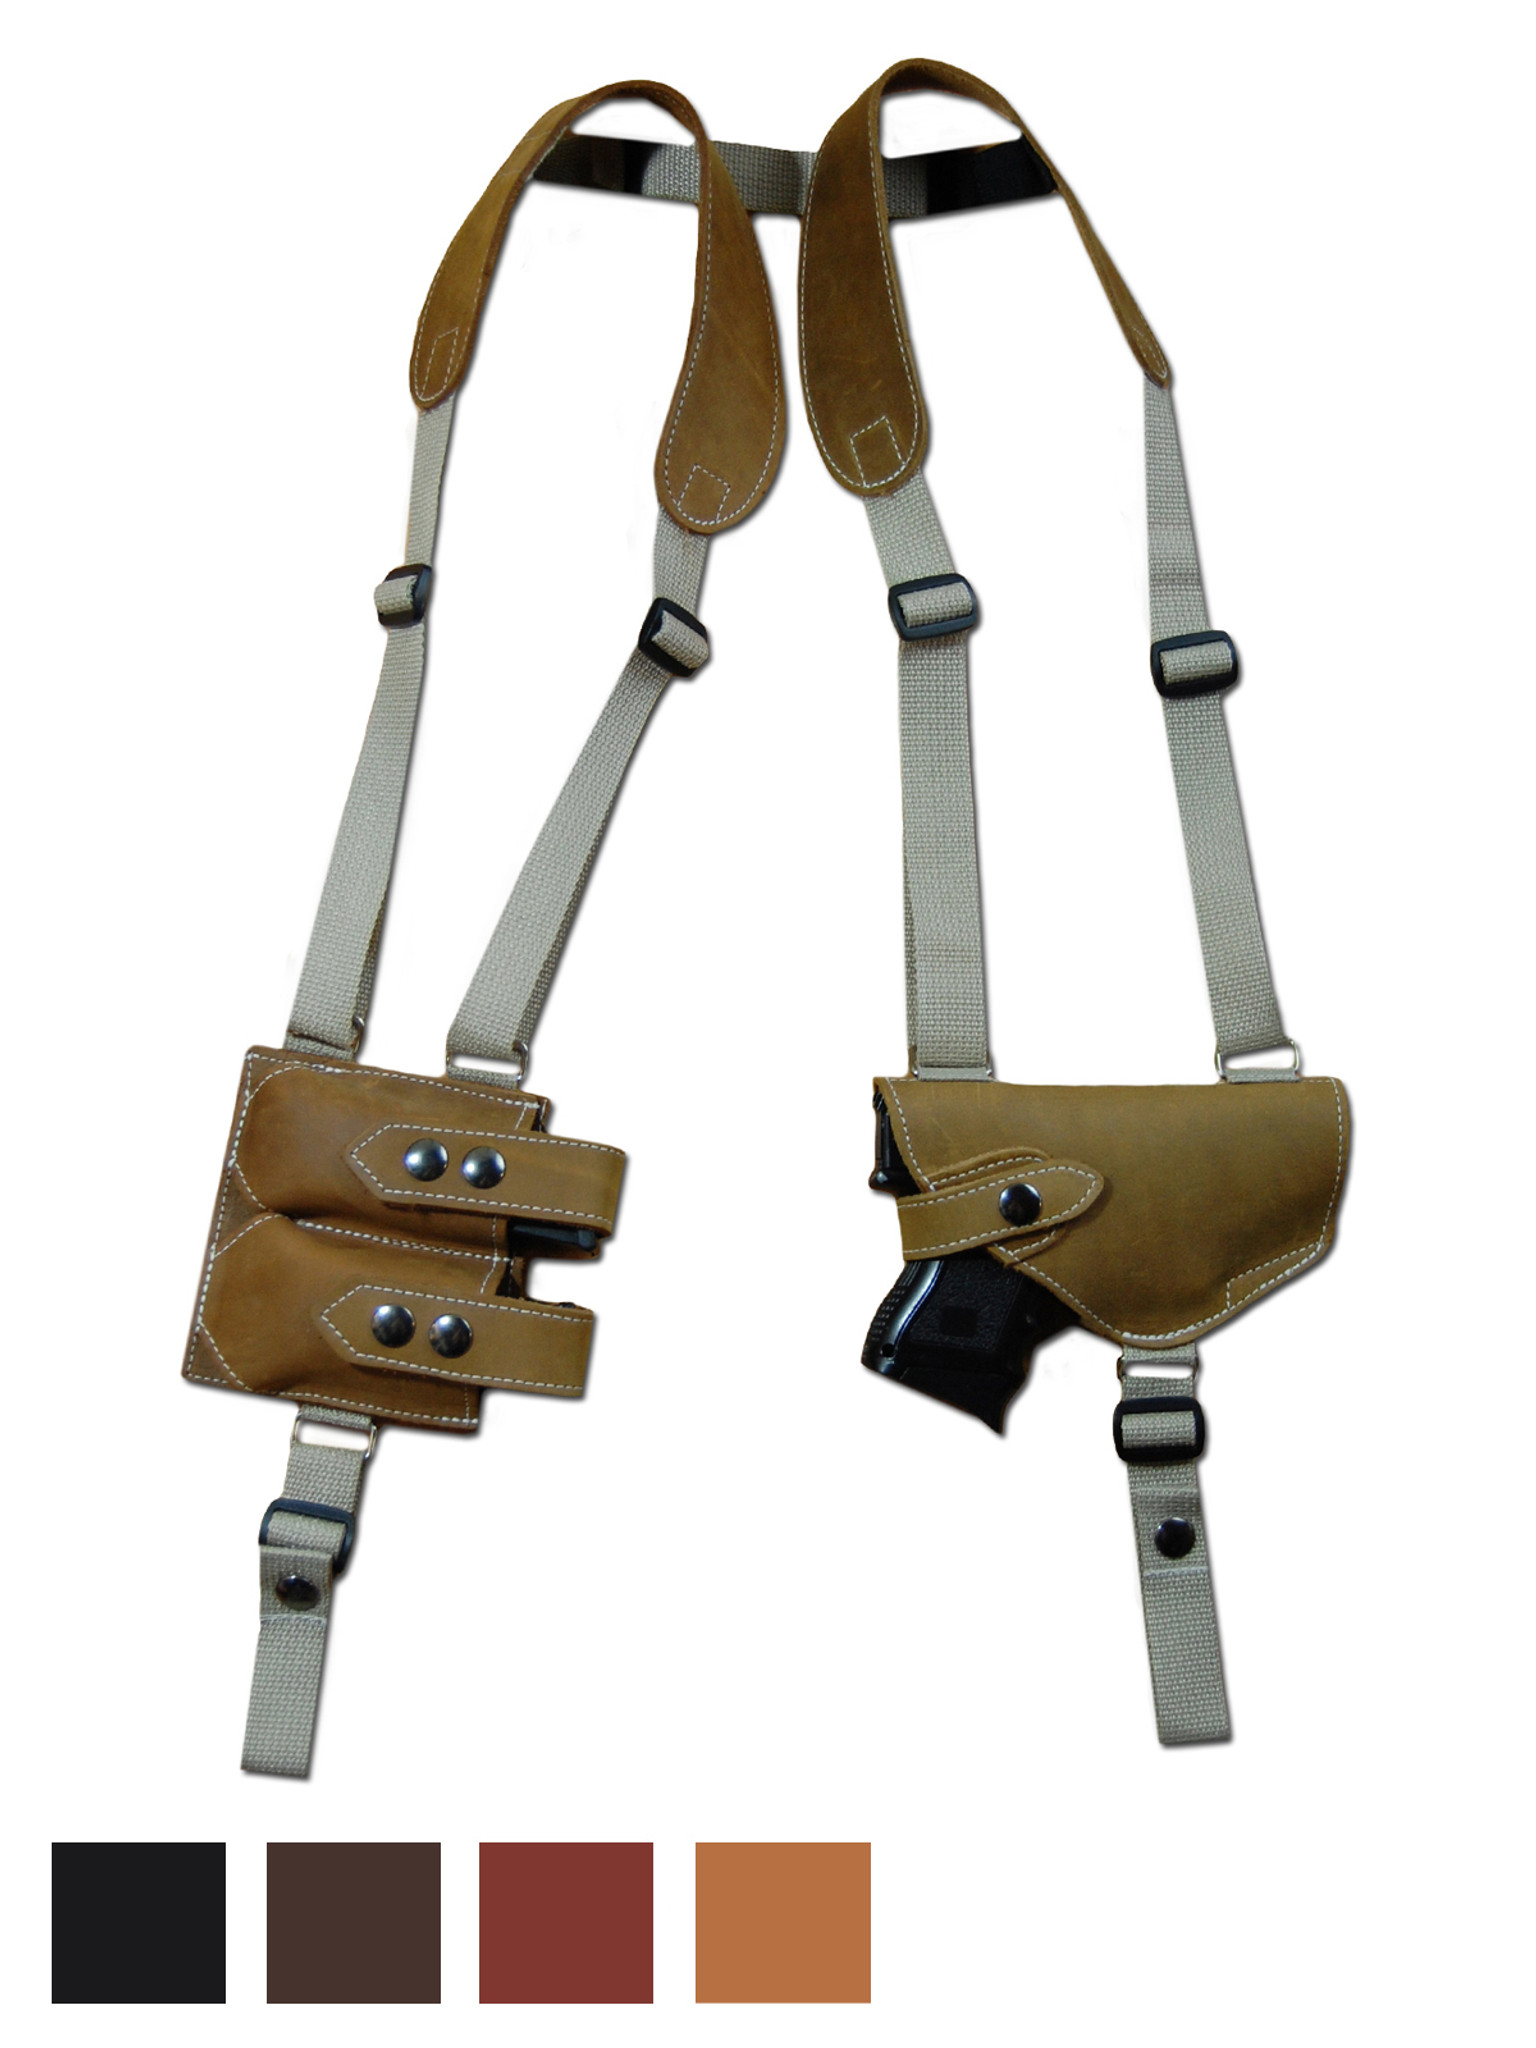 NEW Barsony Olive Drab Leather Shoulder Holster S/&W M/&P Compact 9mm 40 45 HOR